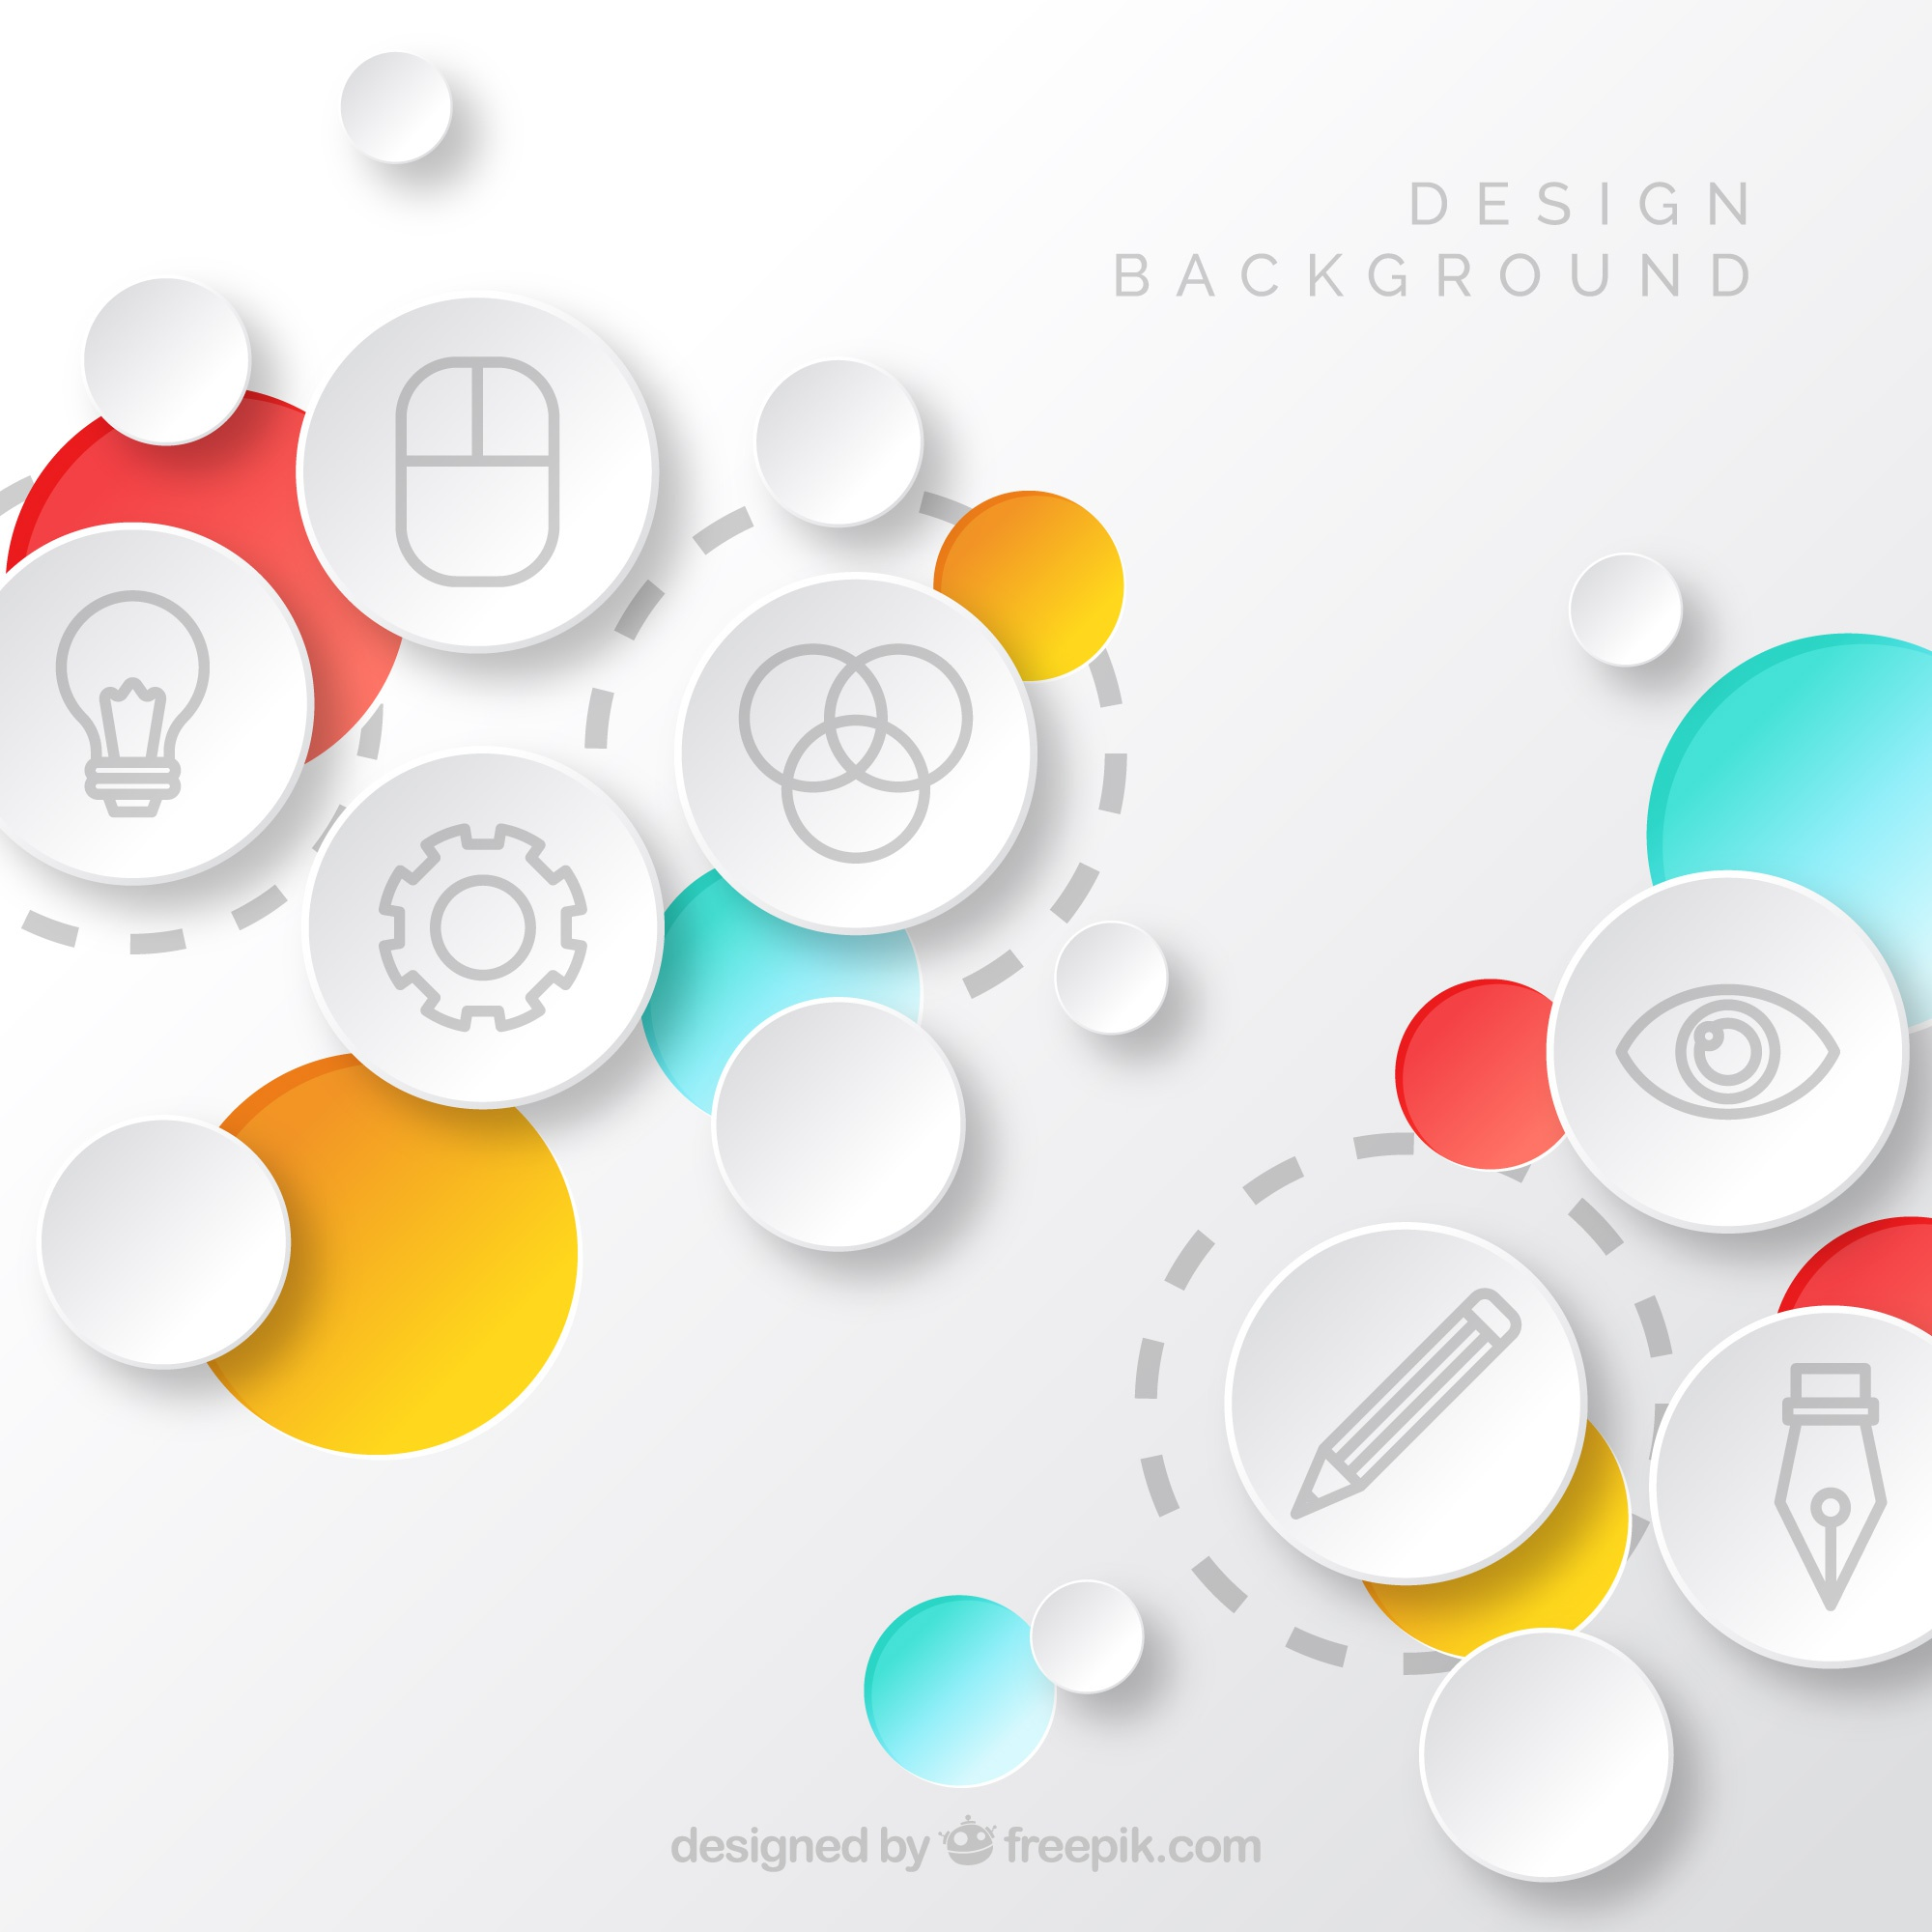 Design elements background